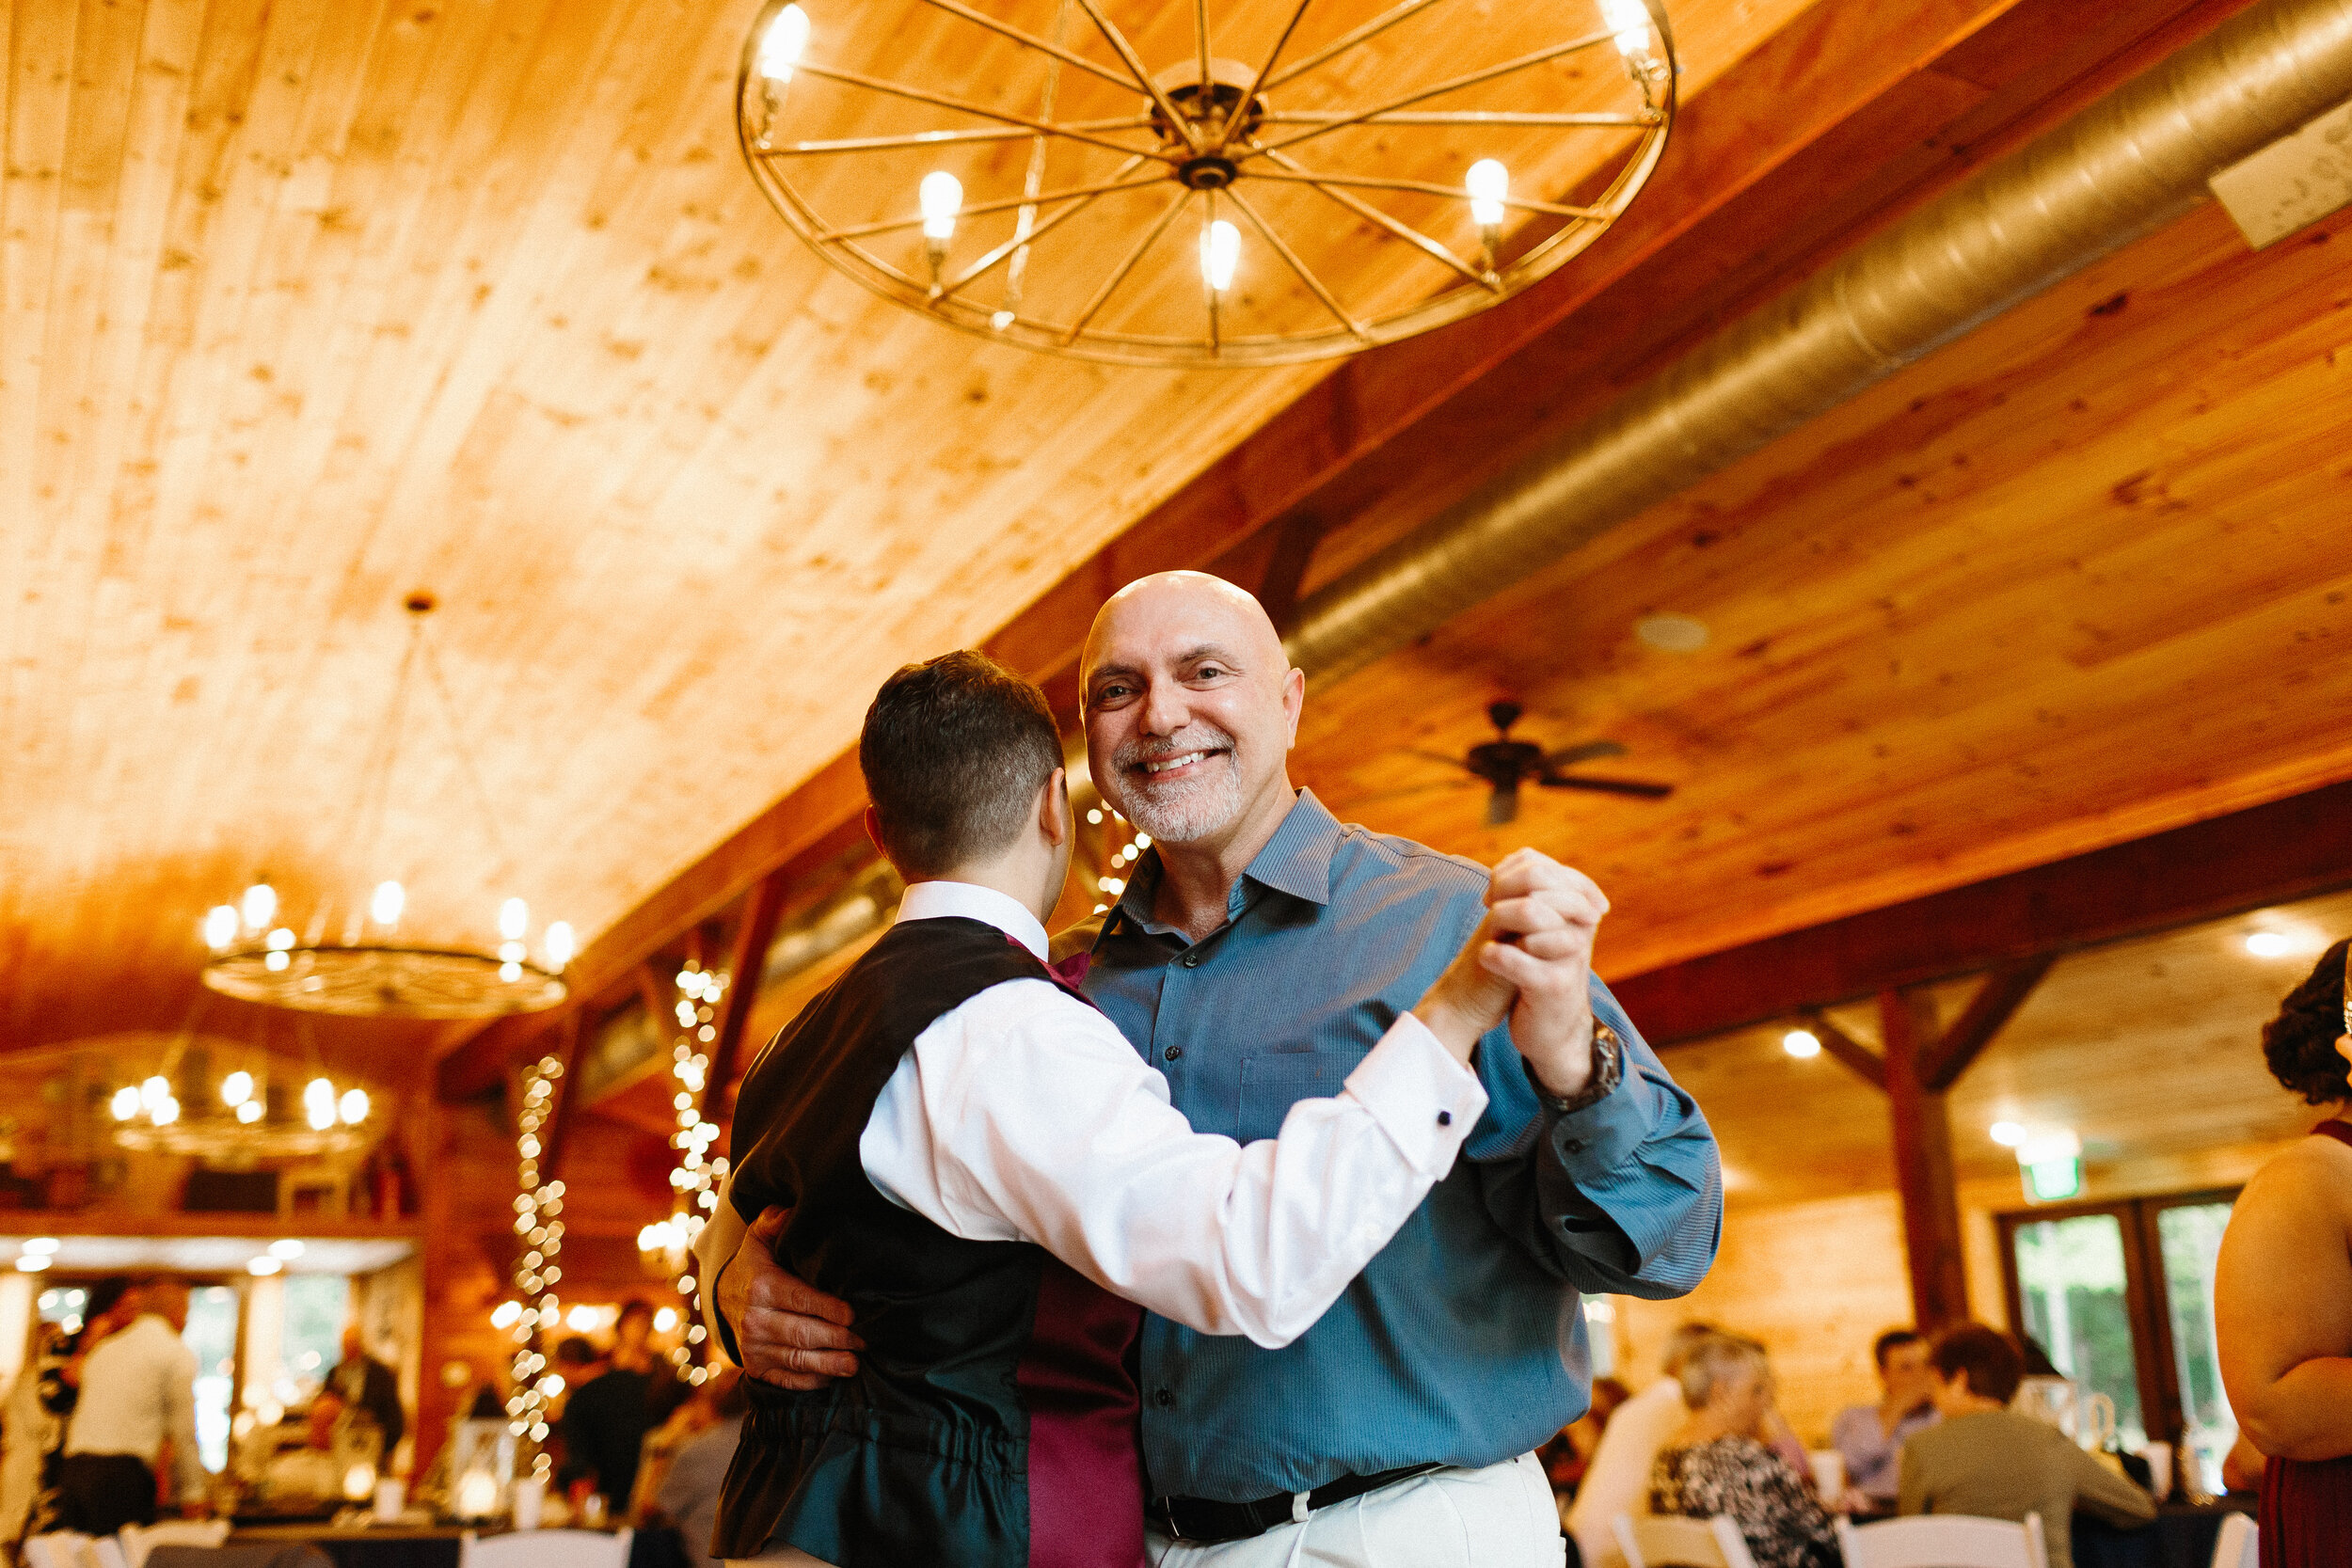 atlanta_wedding_photographers_georgia_same_sex_rustic_barn_farm_lesbian_weddings_inclusive_3105.jpg